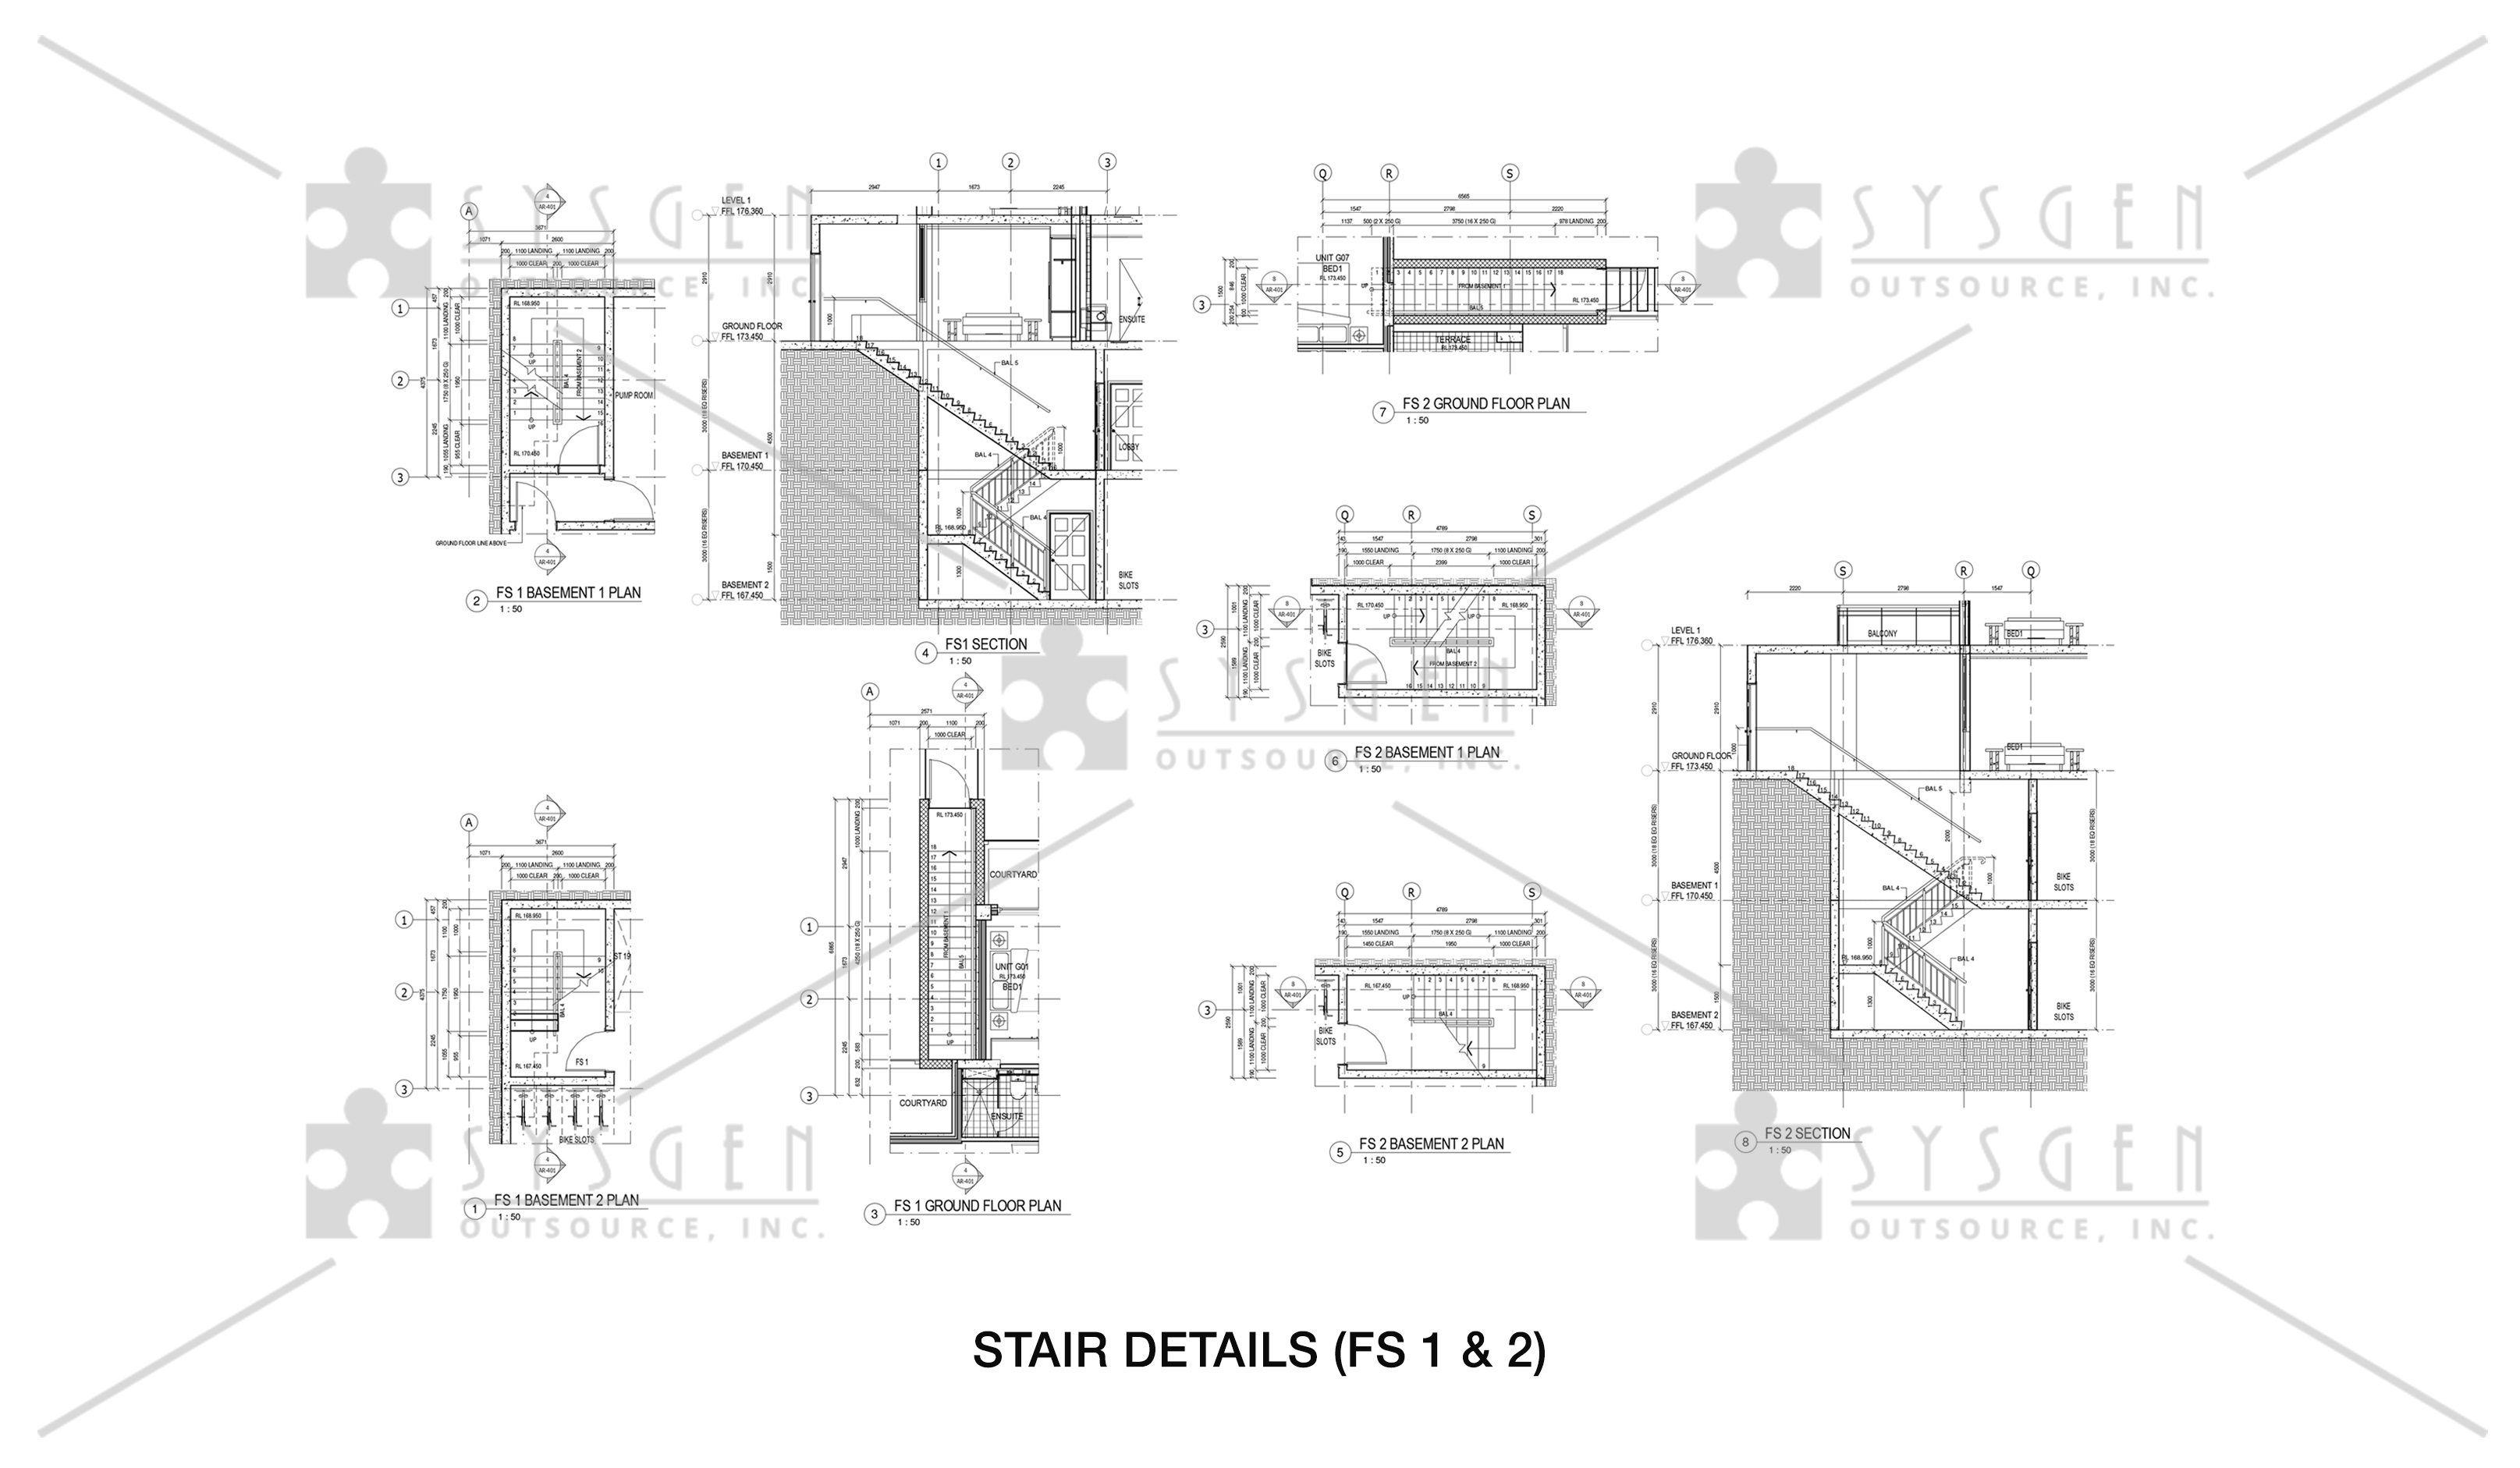 sysgen-outsource-cad-outsourcing-services-cad-conversion-revit-4-storey-residential14